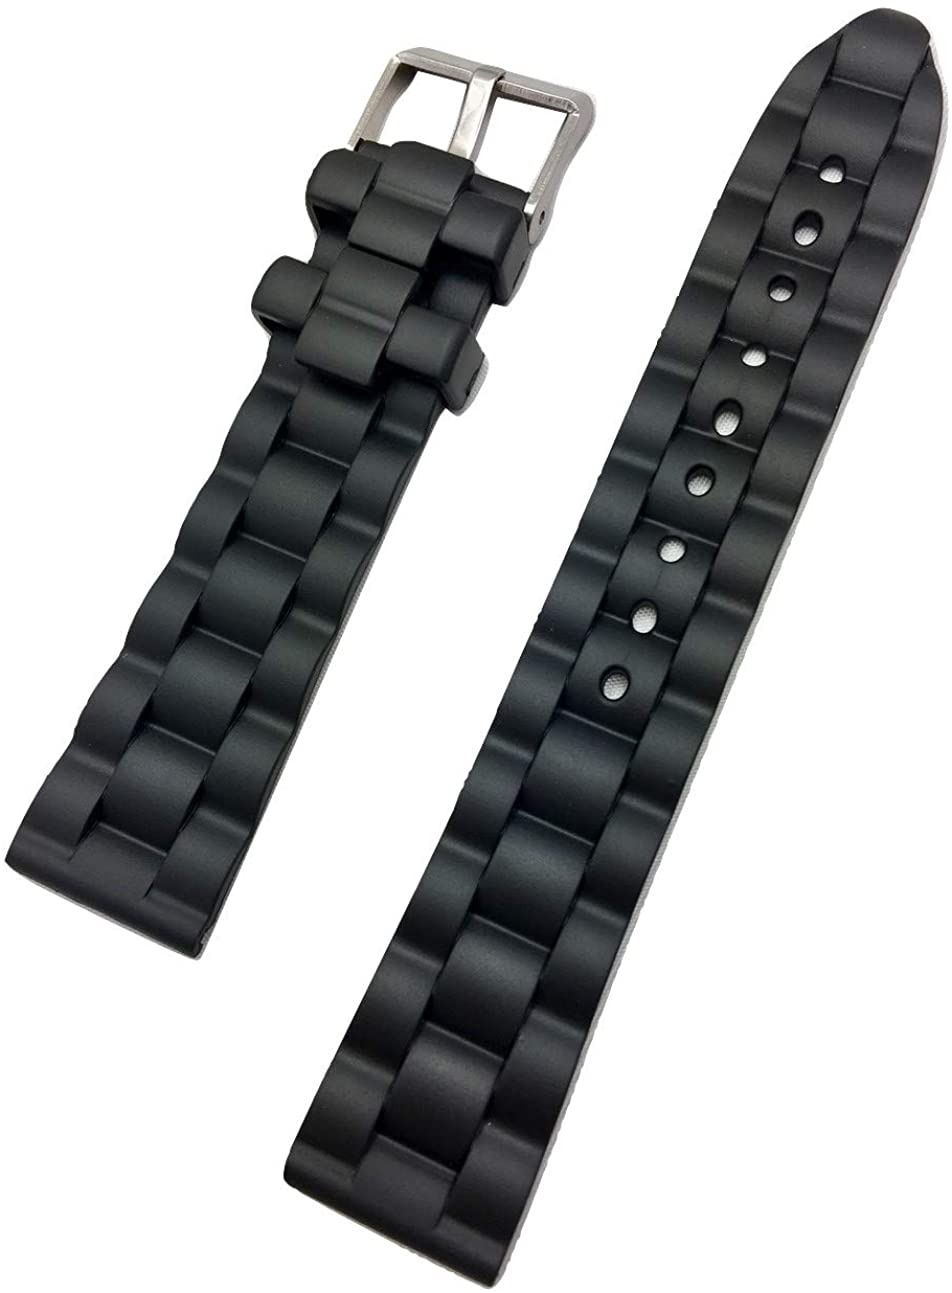 20mm Black Rubber PVC Material Watch Band | Comfortable and Durable, Patterned Design Replacement Wrist Strap That Brings New Life to Any Watch for Women and Men